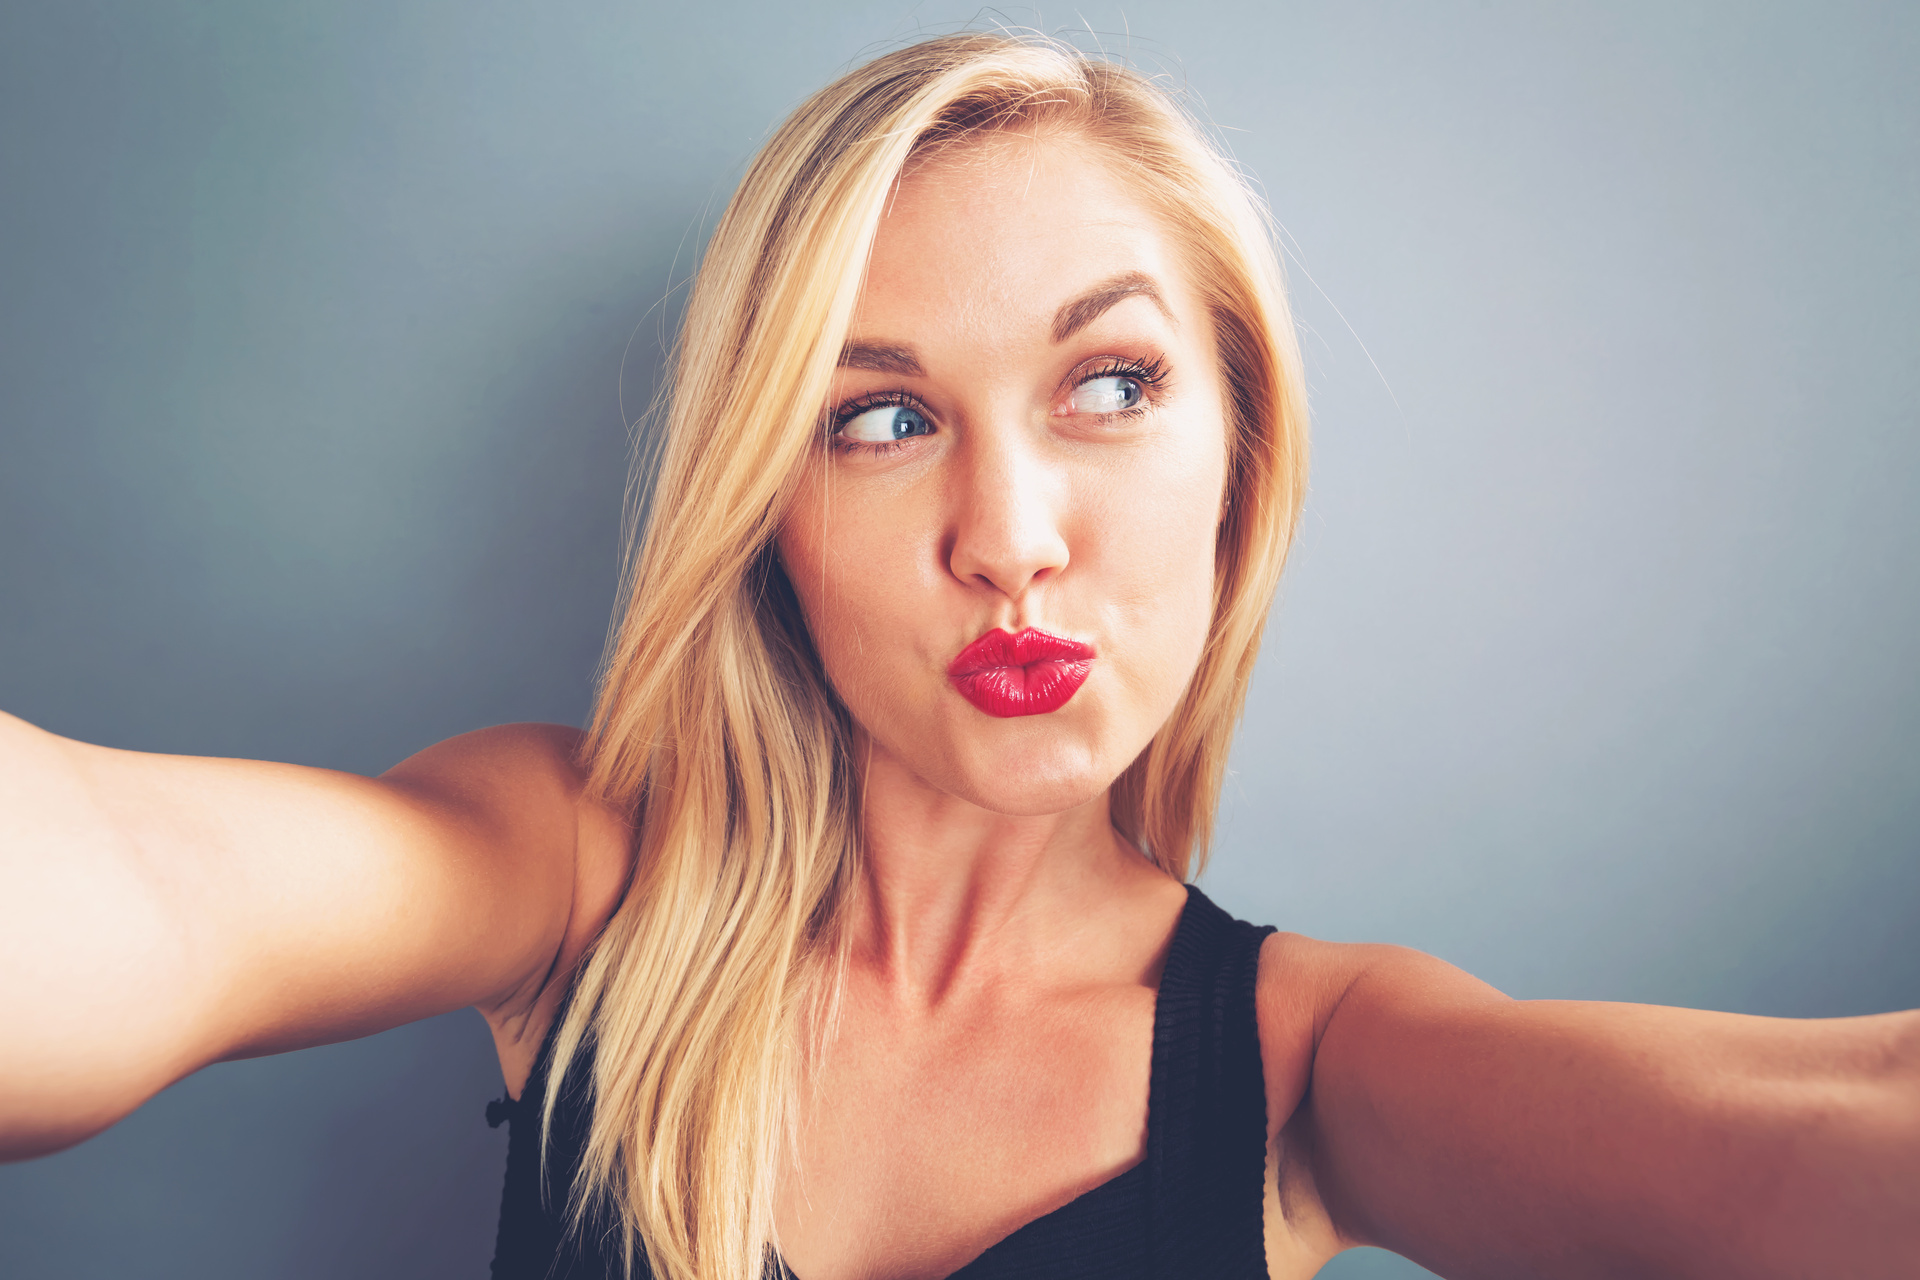 Rise in selfies puts gloss on L'Oreal's bottom line